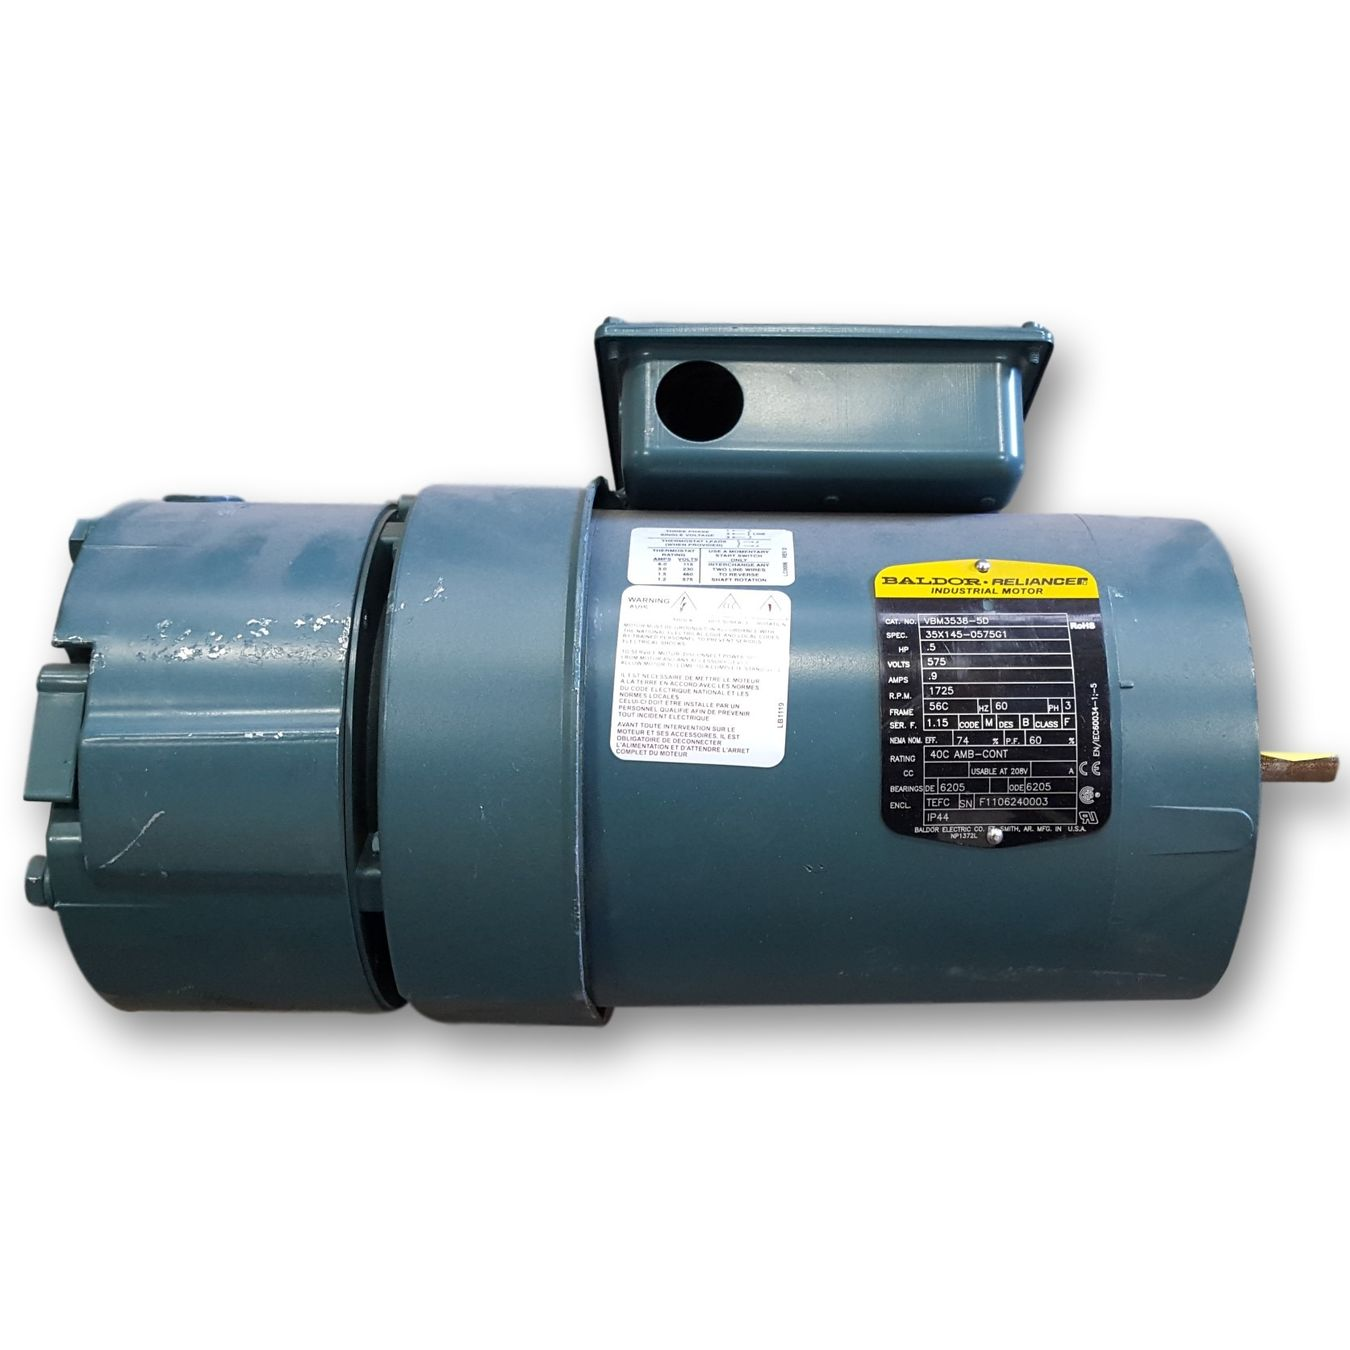 Used 1 2 hp baldor reliance industrial motor 1725 rpm for 1 hp motor amps